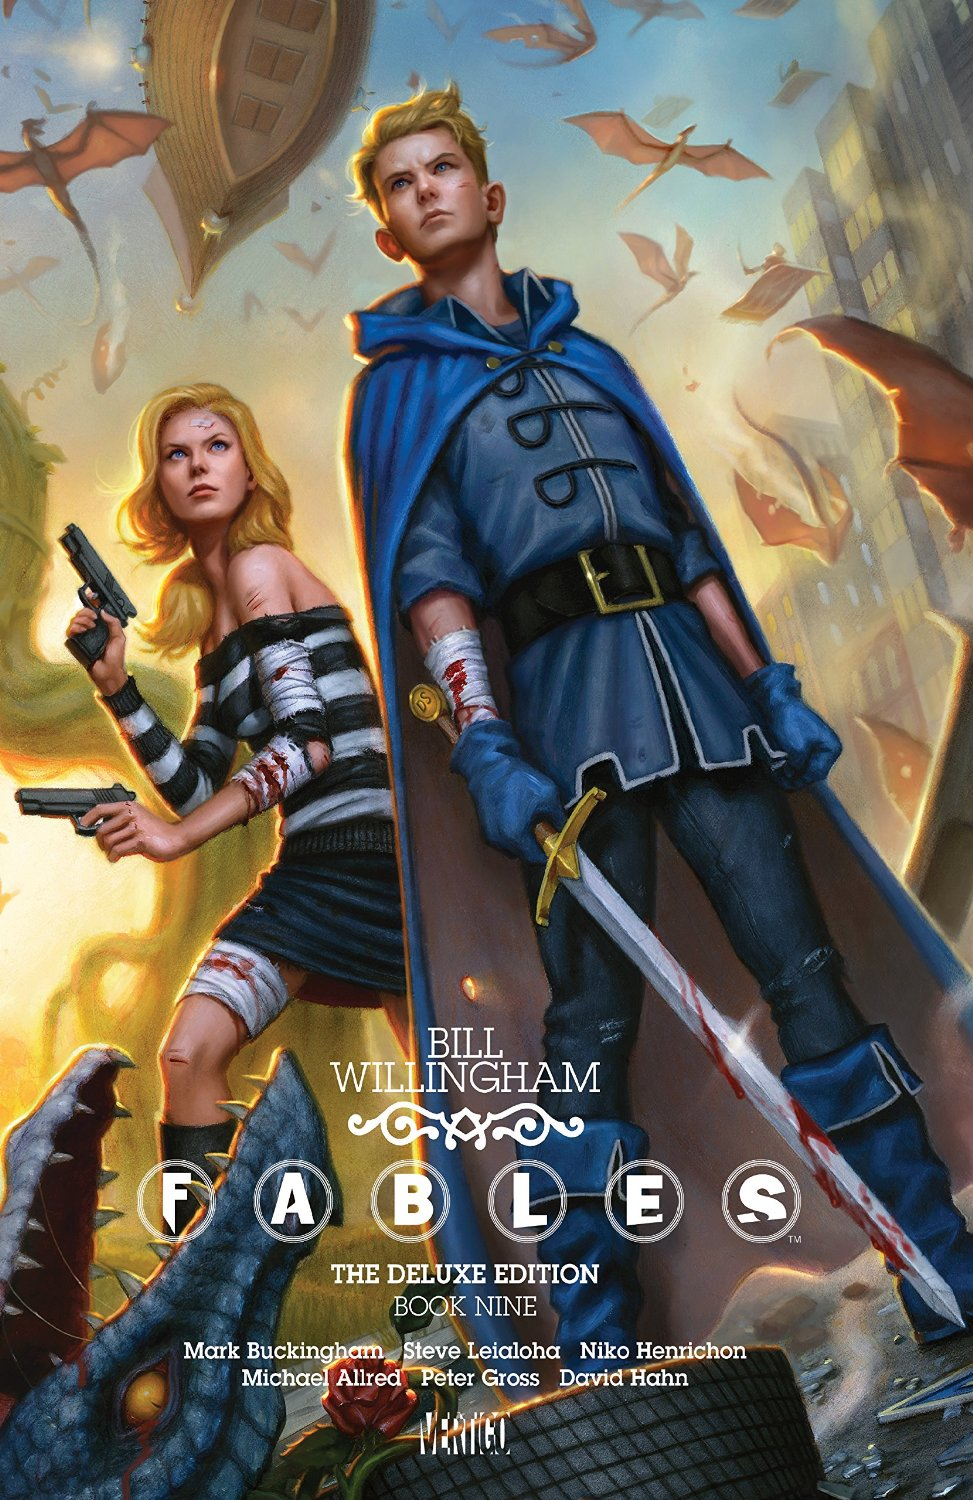 Fables: The Deluxe Edition - Book Nine (Collected)